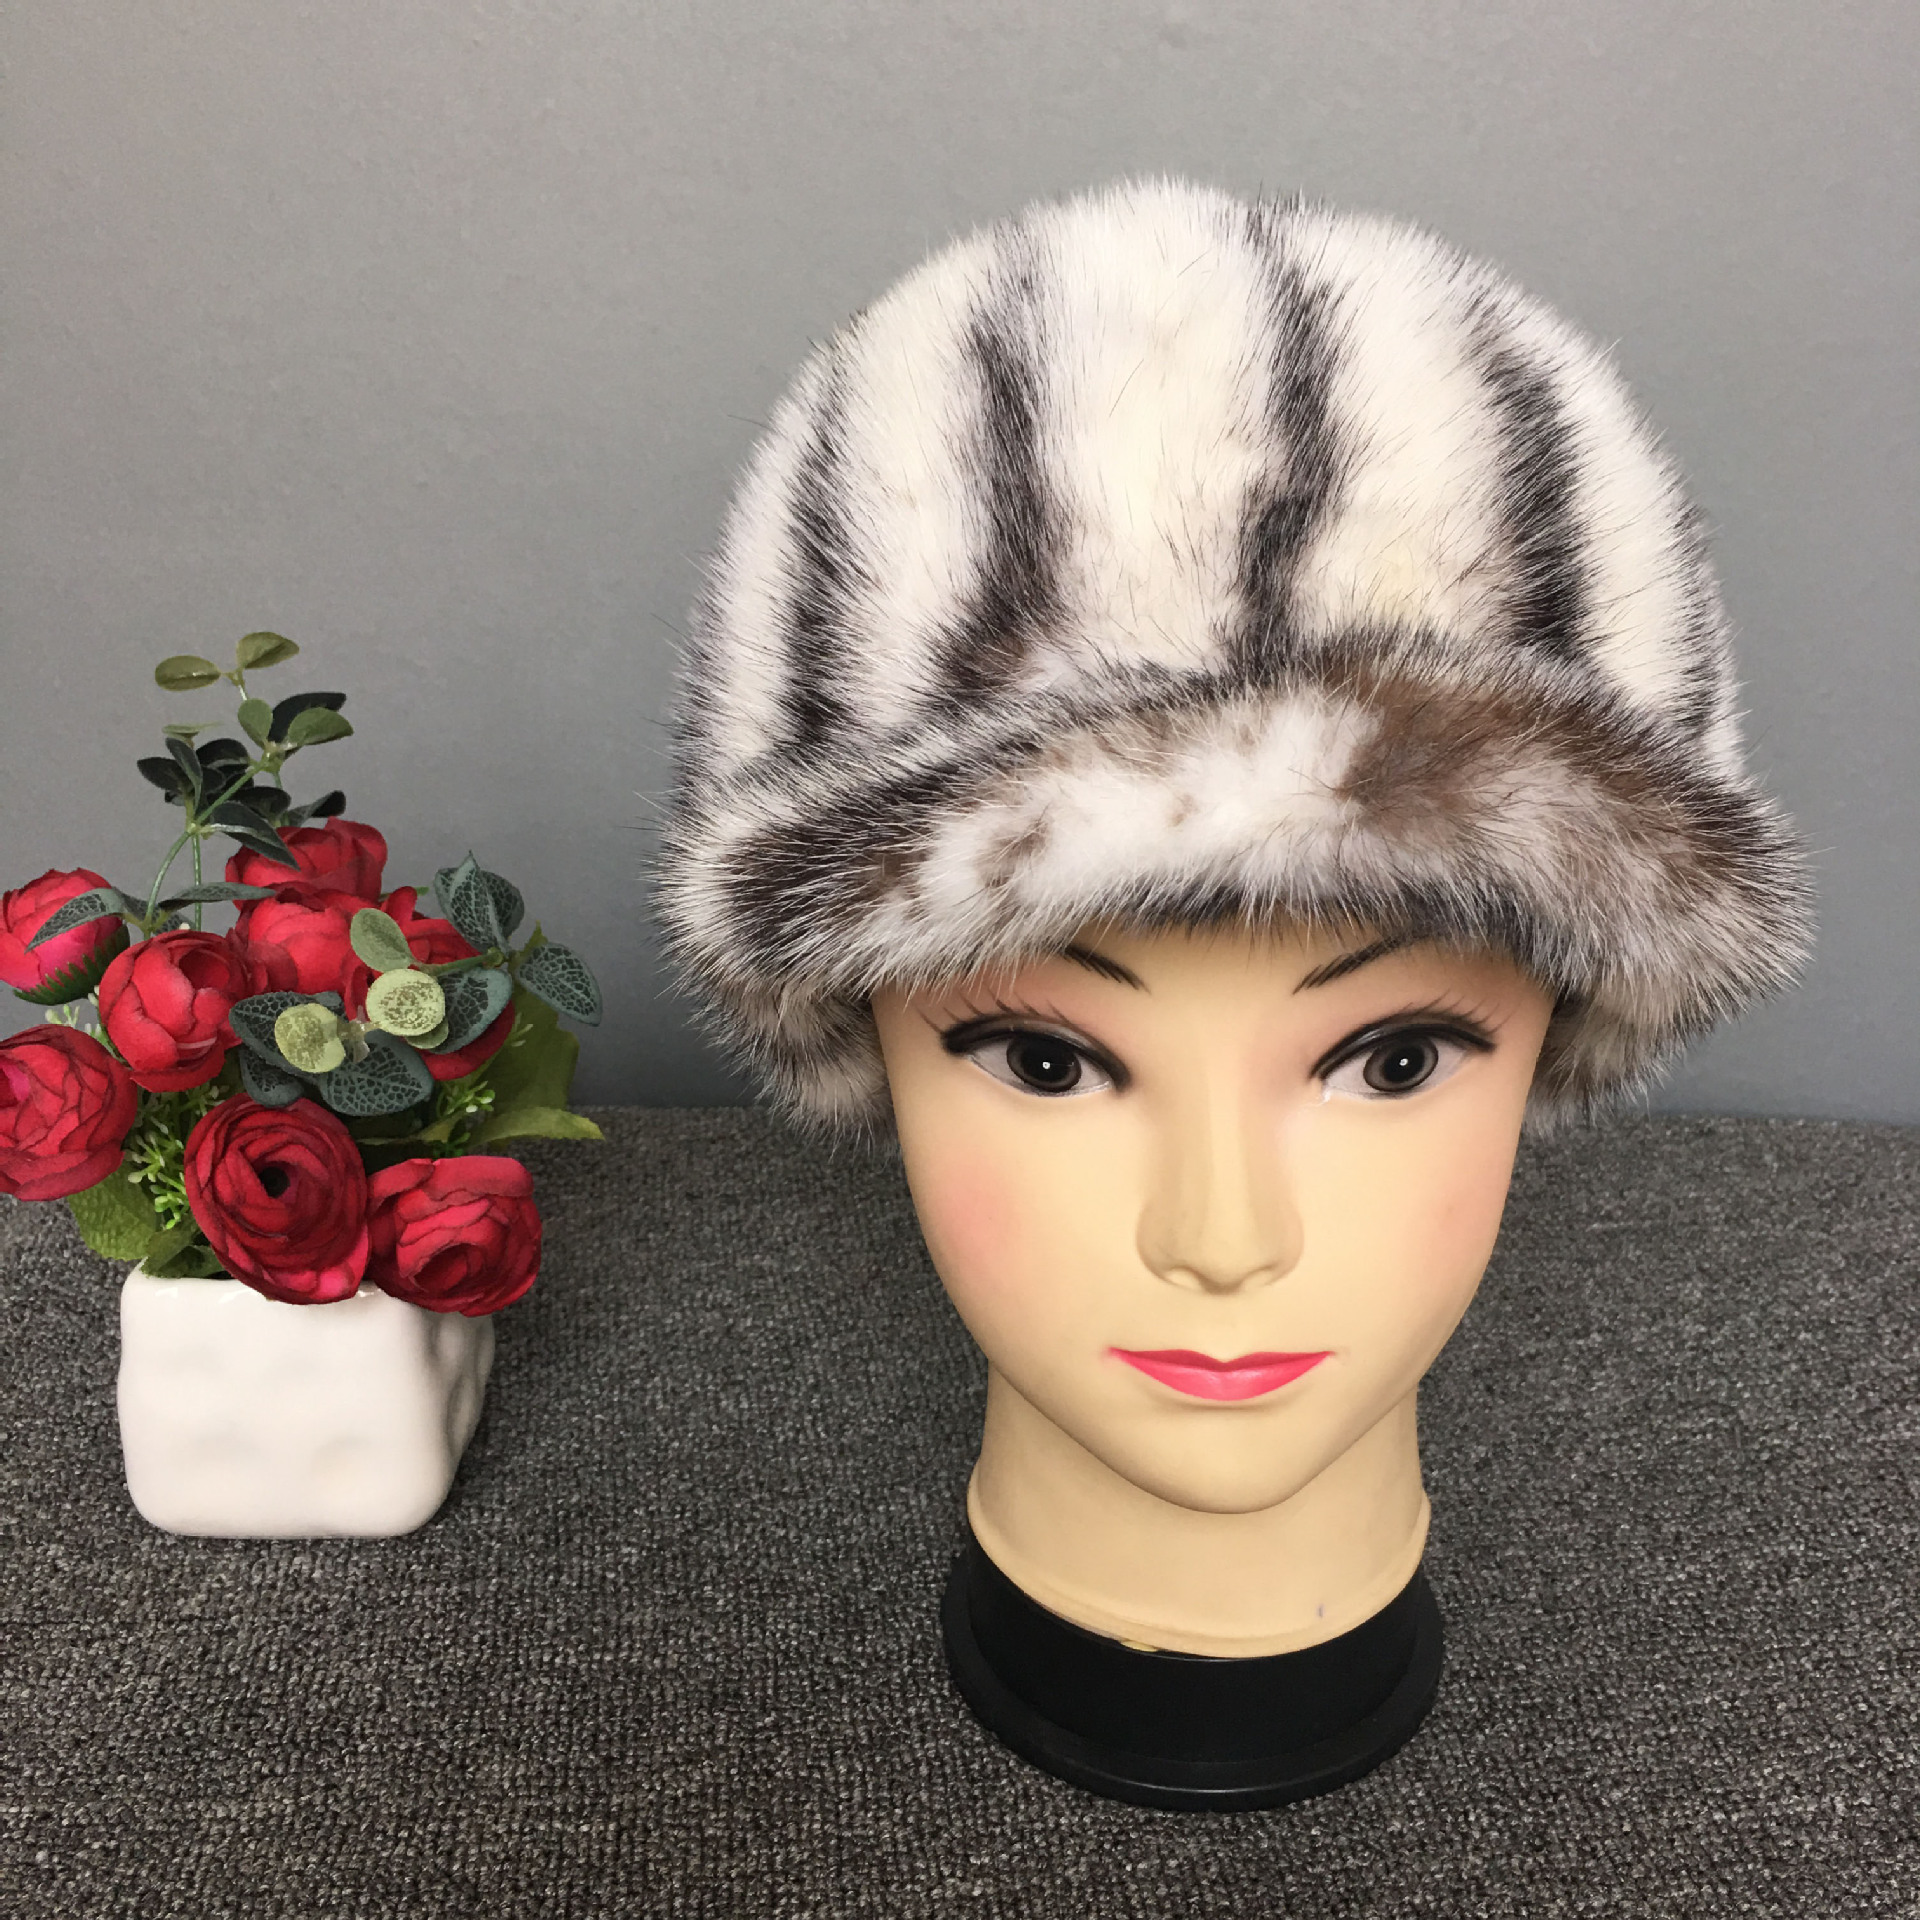 2017 Winter mink fur hat female earmuffs caps Guarantee 100% Natural Genuine Fur Cap Knitted Hats Women Beanies Warm Cap hats russian hats for extremely cold fur hat guarantee 100